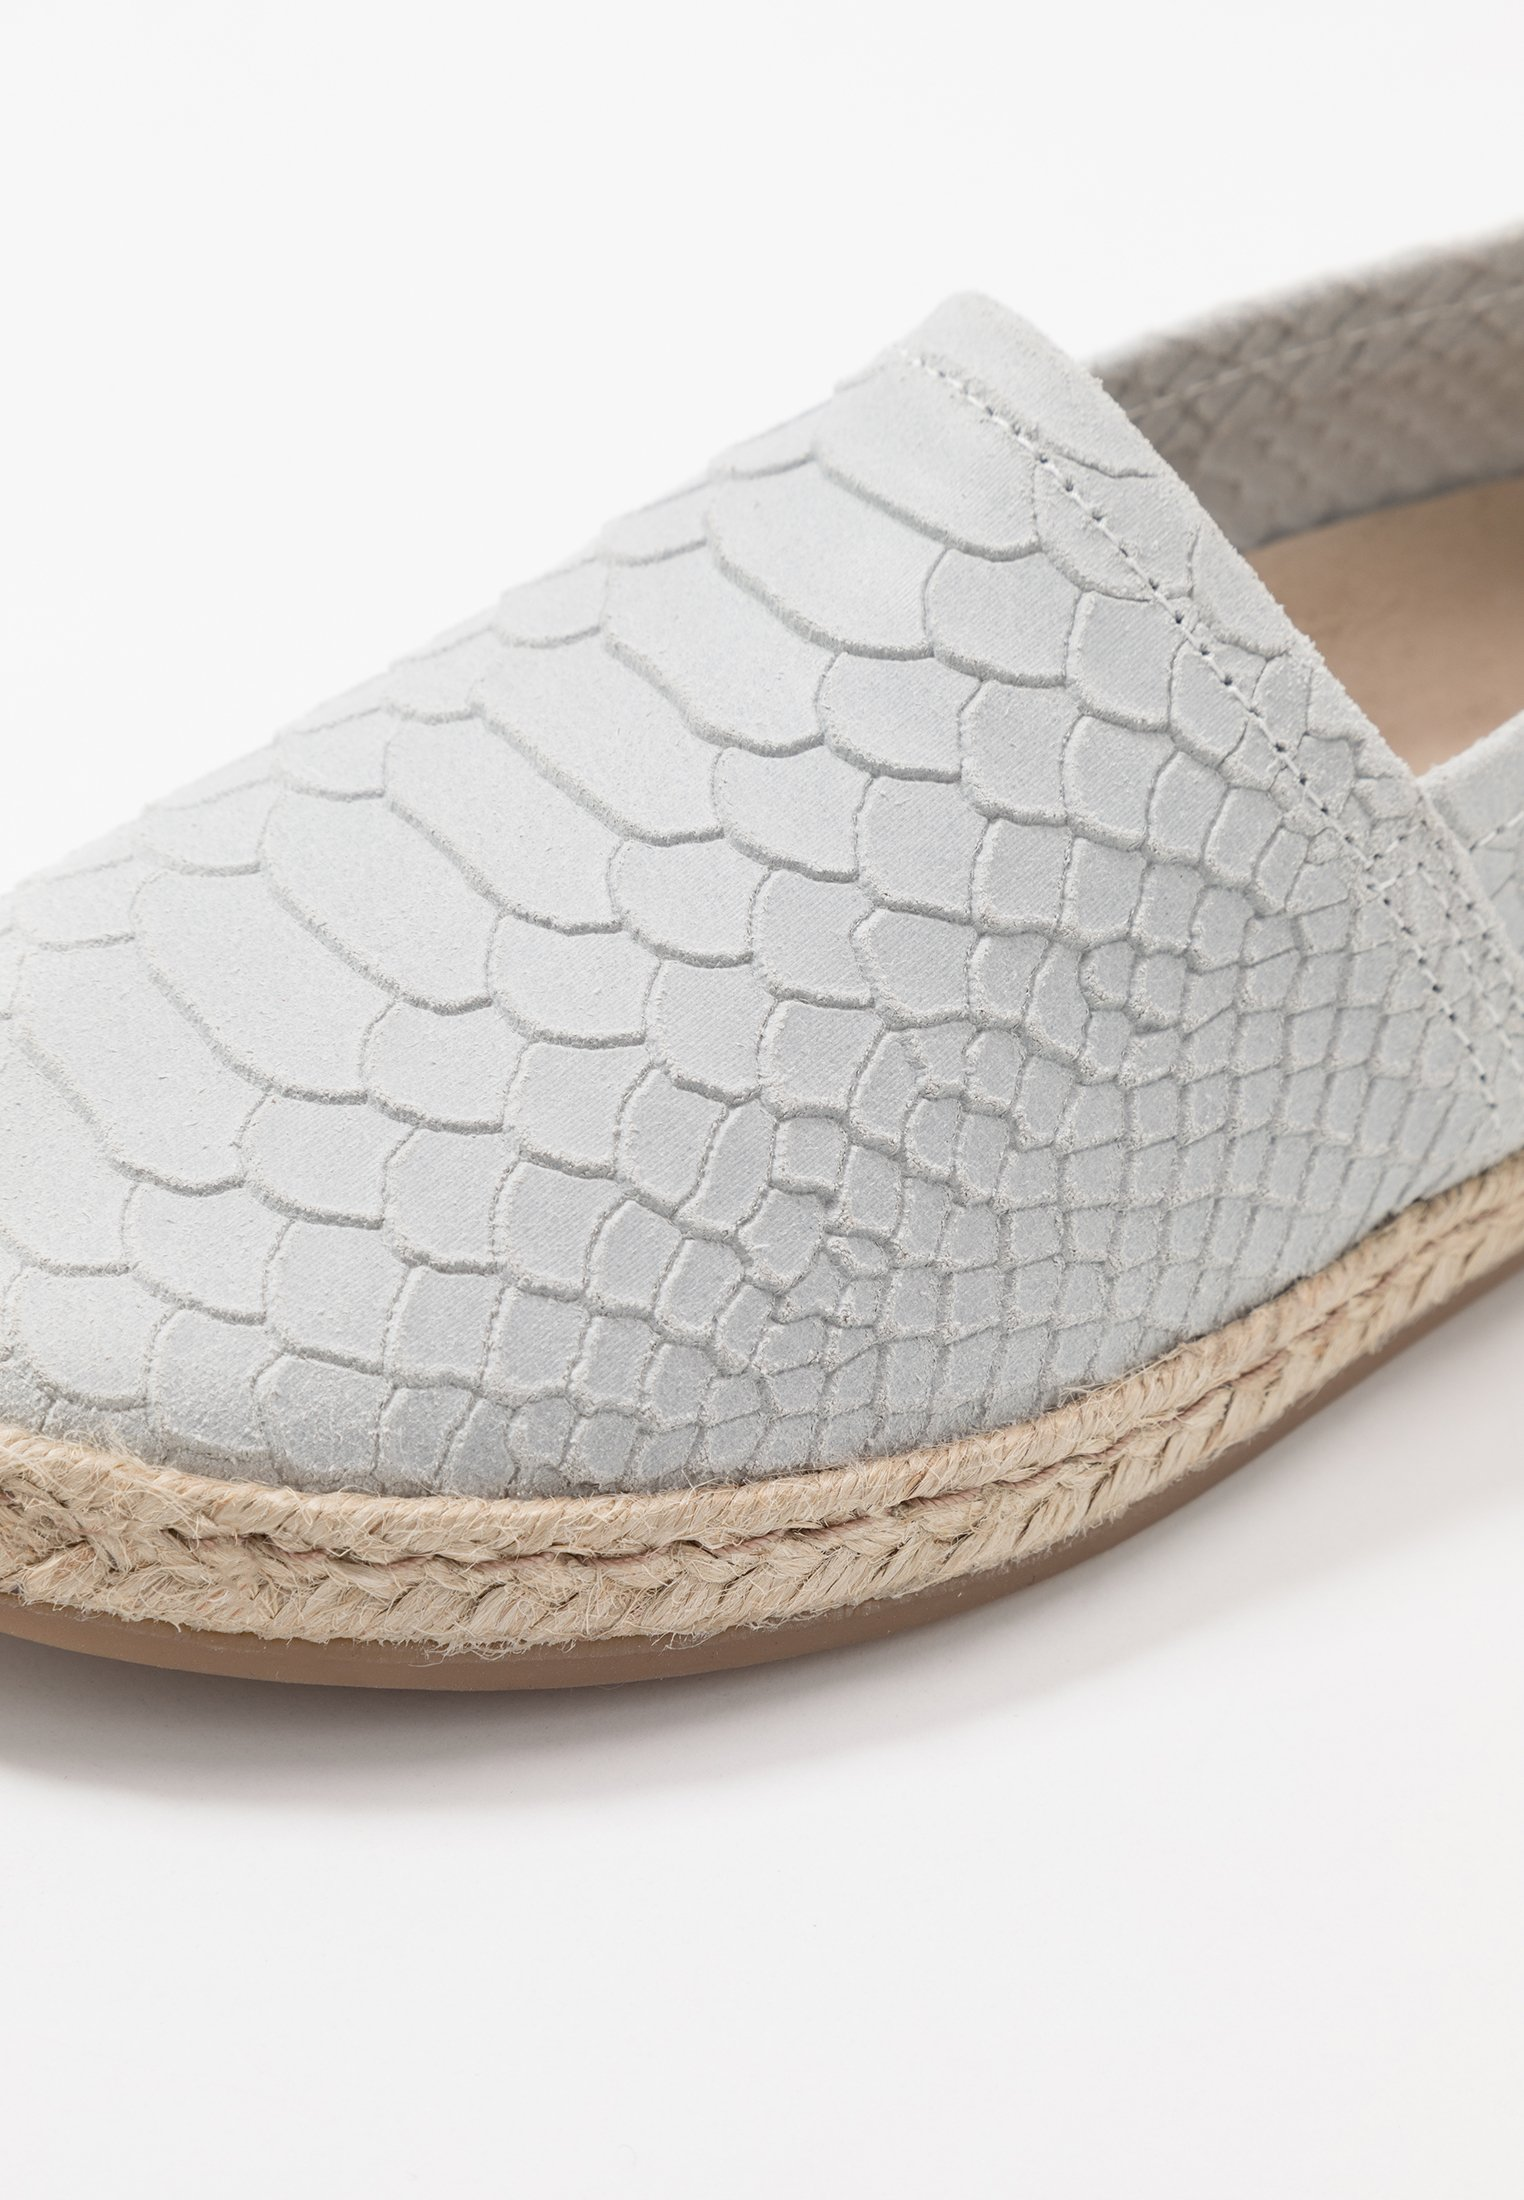 Grey Pier EspadrillesLight One Grey EspadrillesLight One Pier Pier FK1Jcl